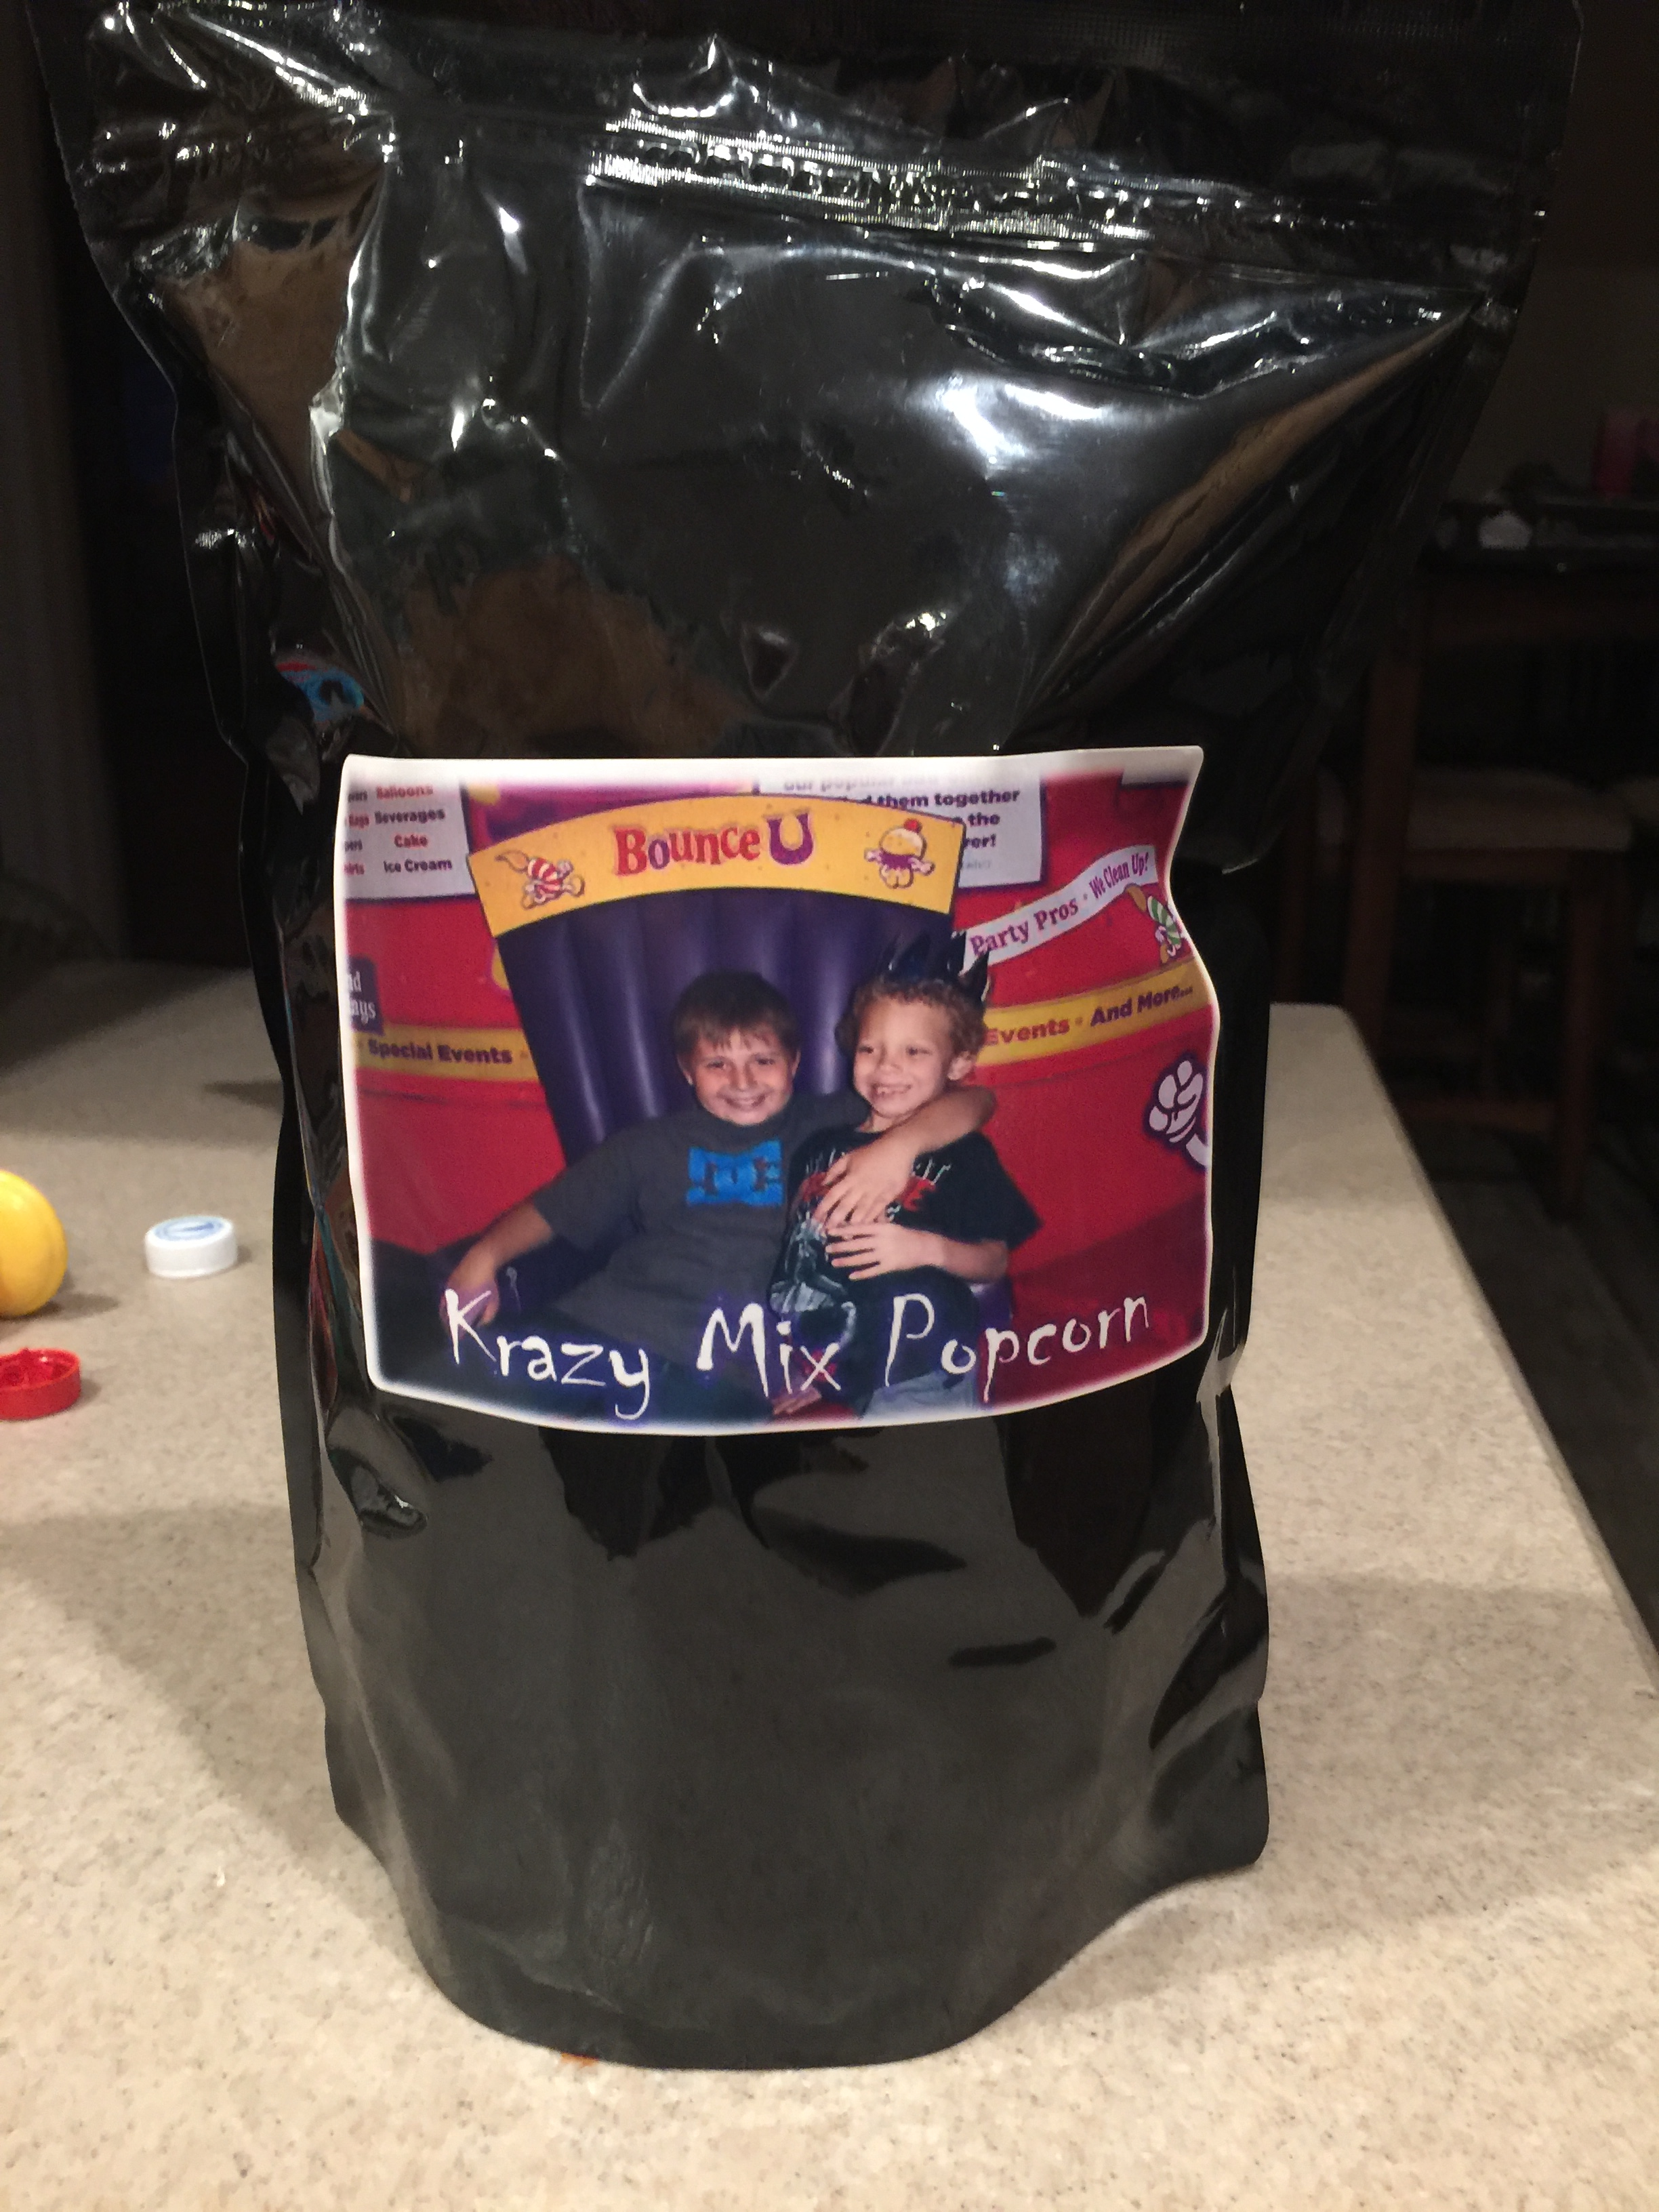 Heather's Popcorn Krazy Mix